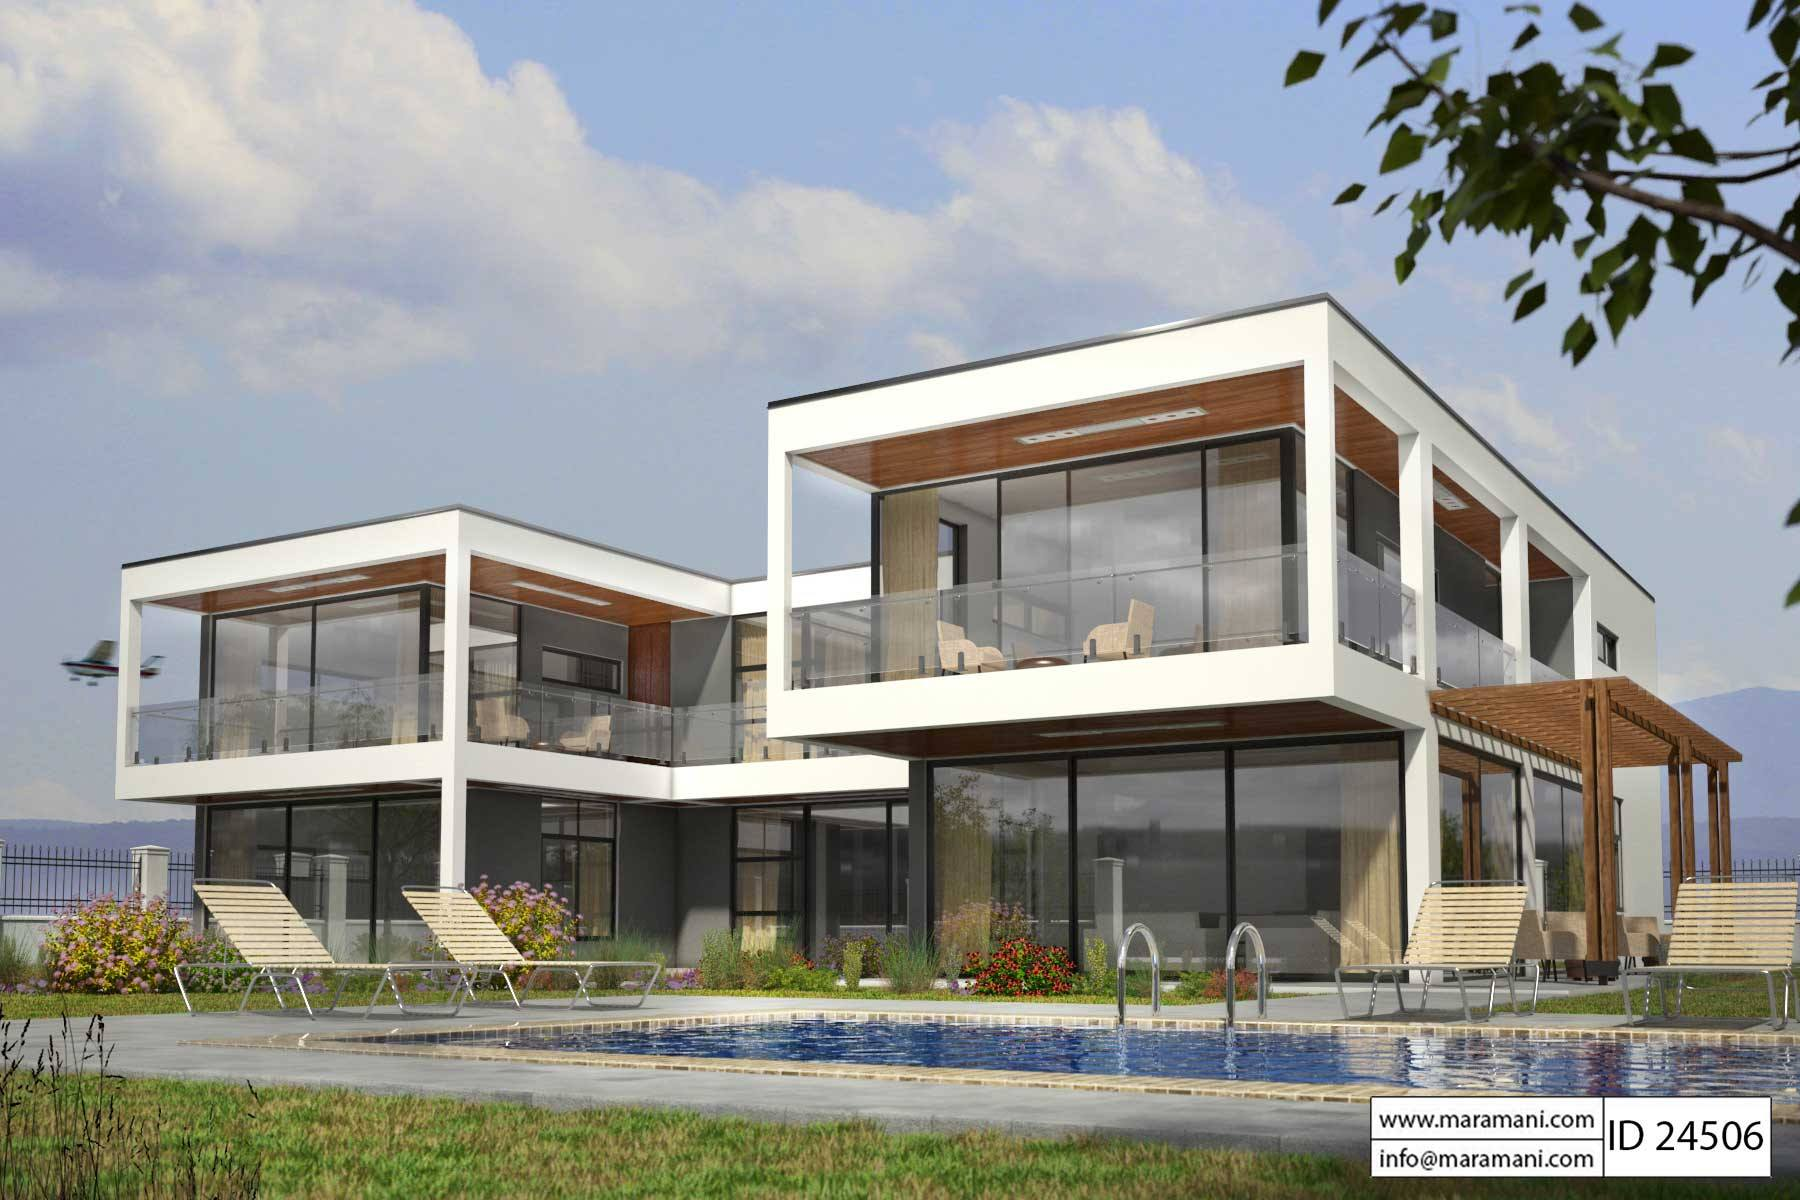 4 bedroom house plan id 24506 - Four Bedroom House Plans